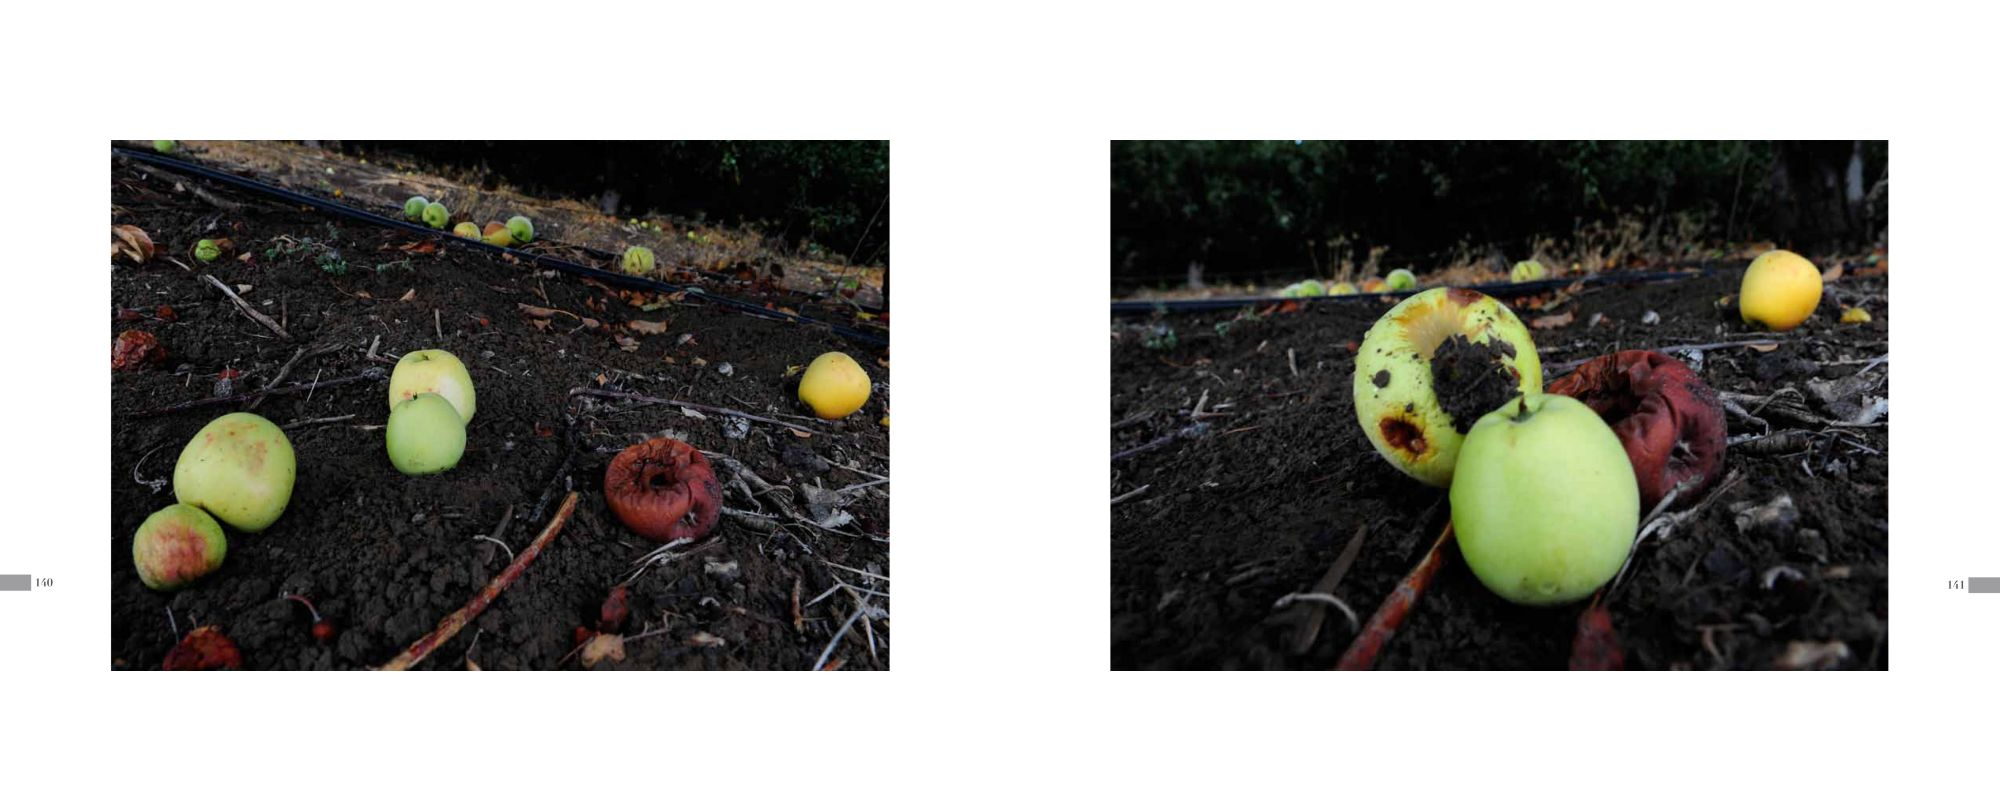 Pages 140-141: Rotting Apples